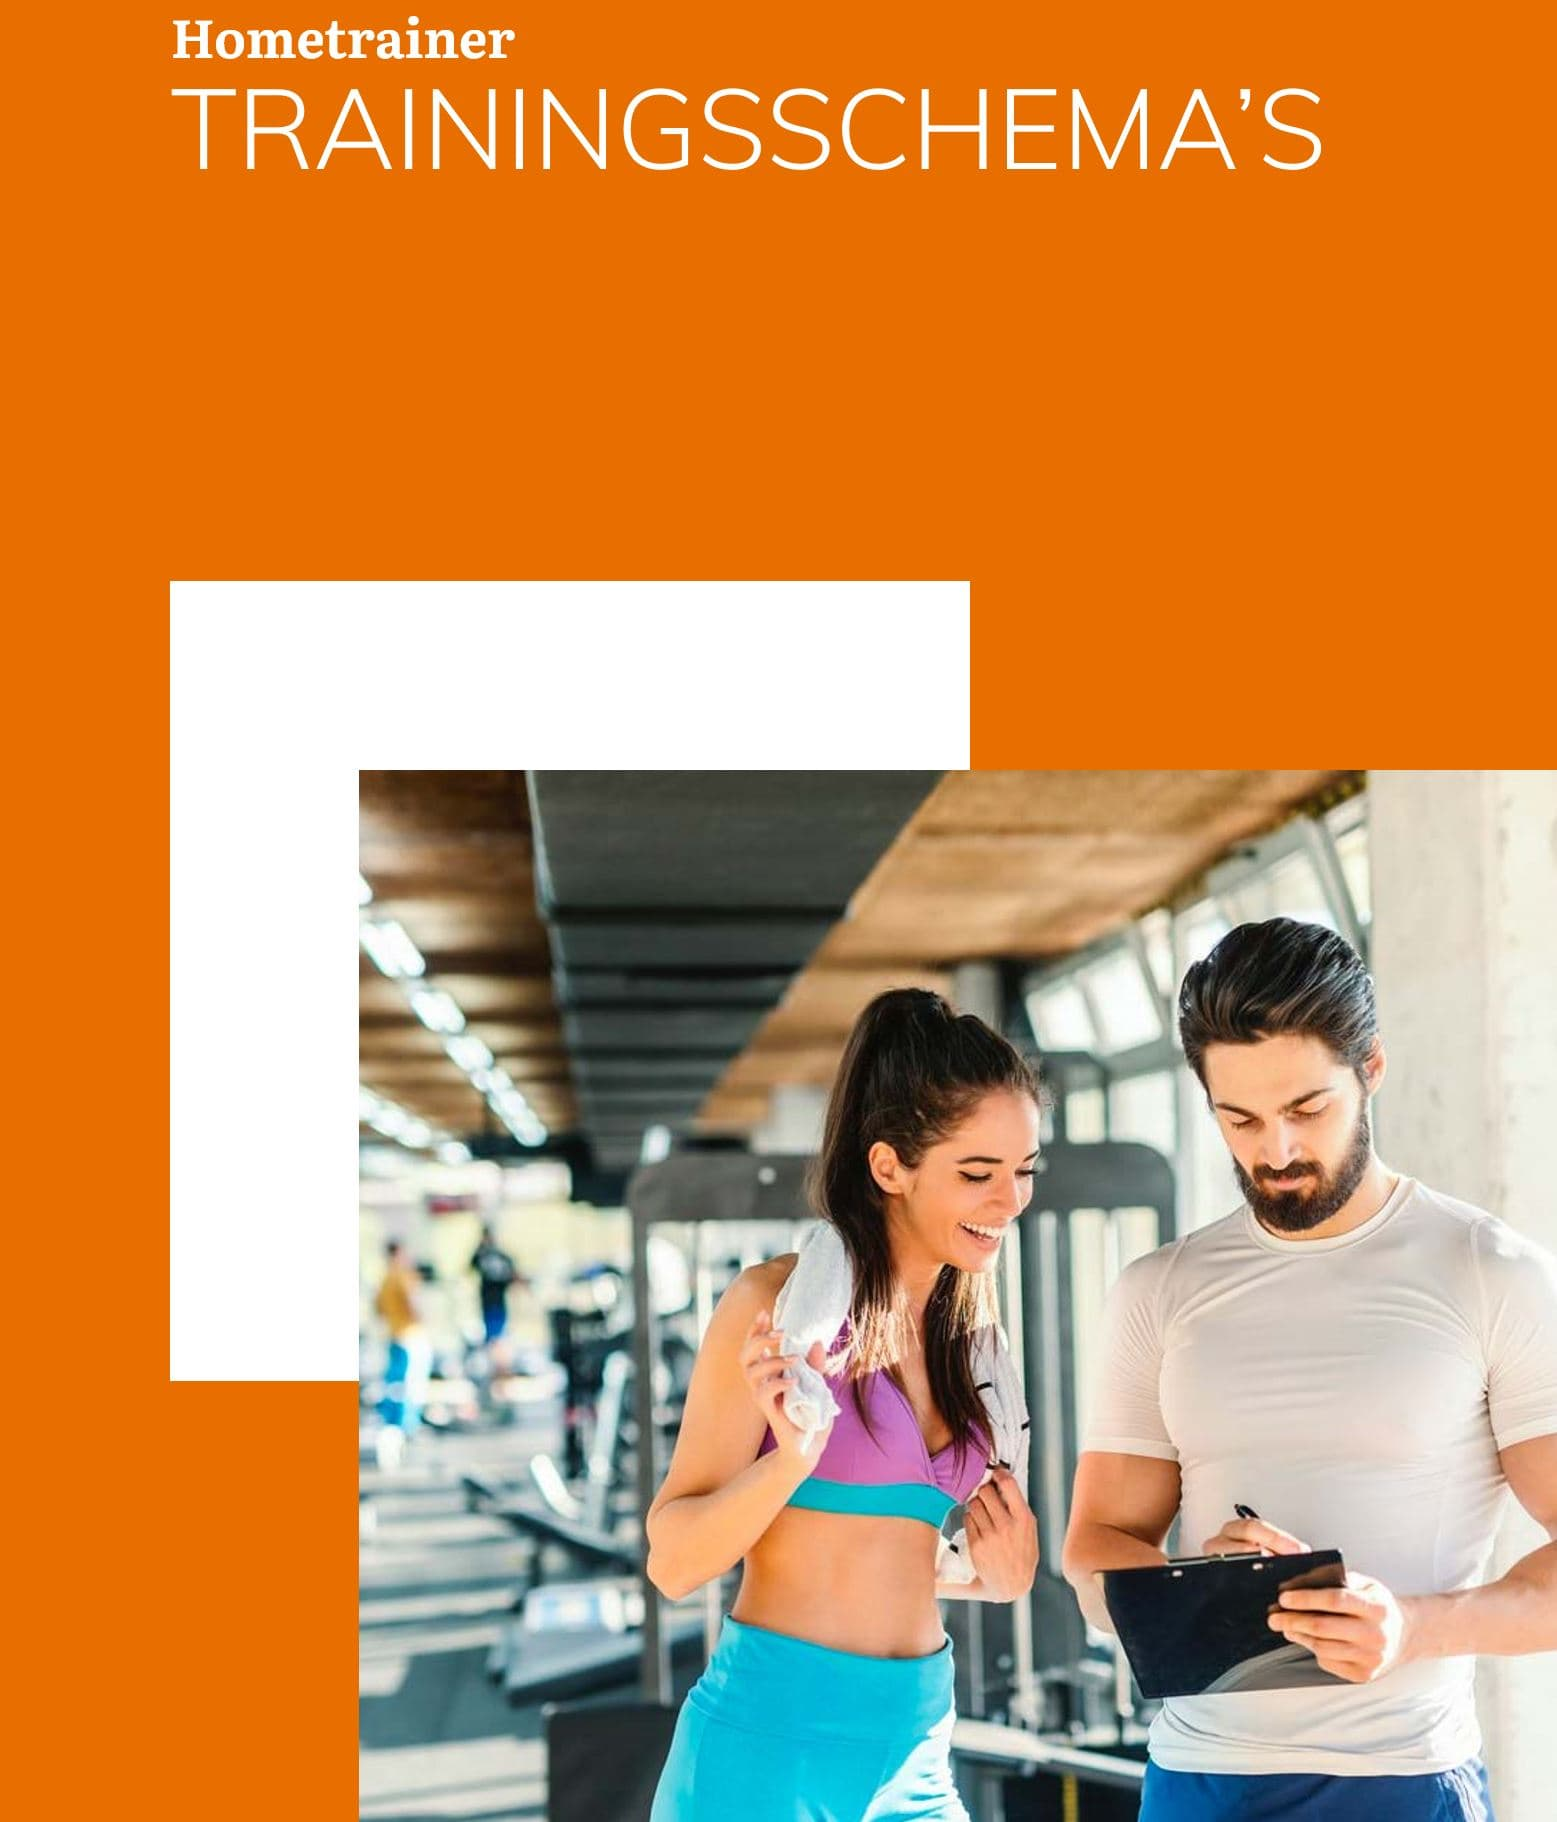 gratis ebook hometrainer trainingsschemas